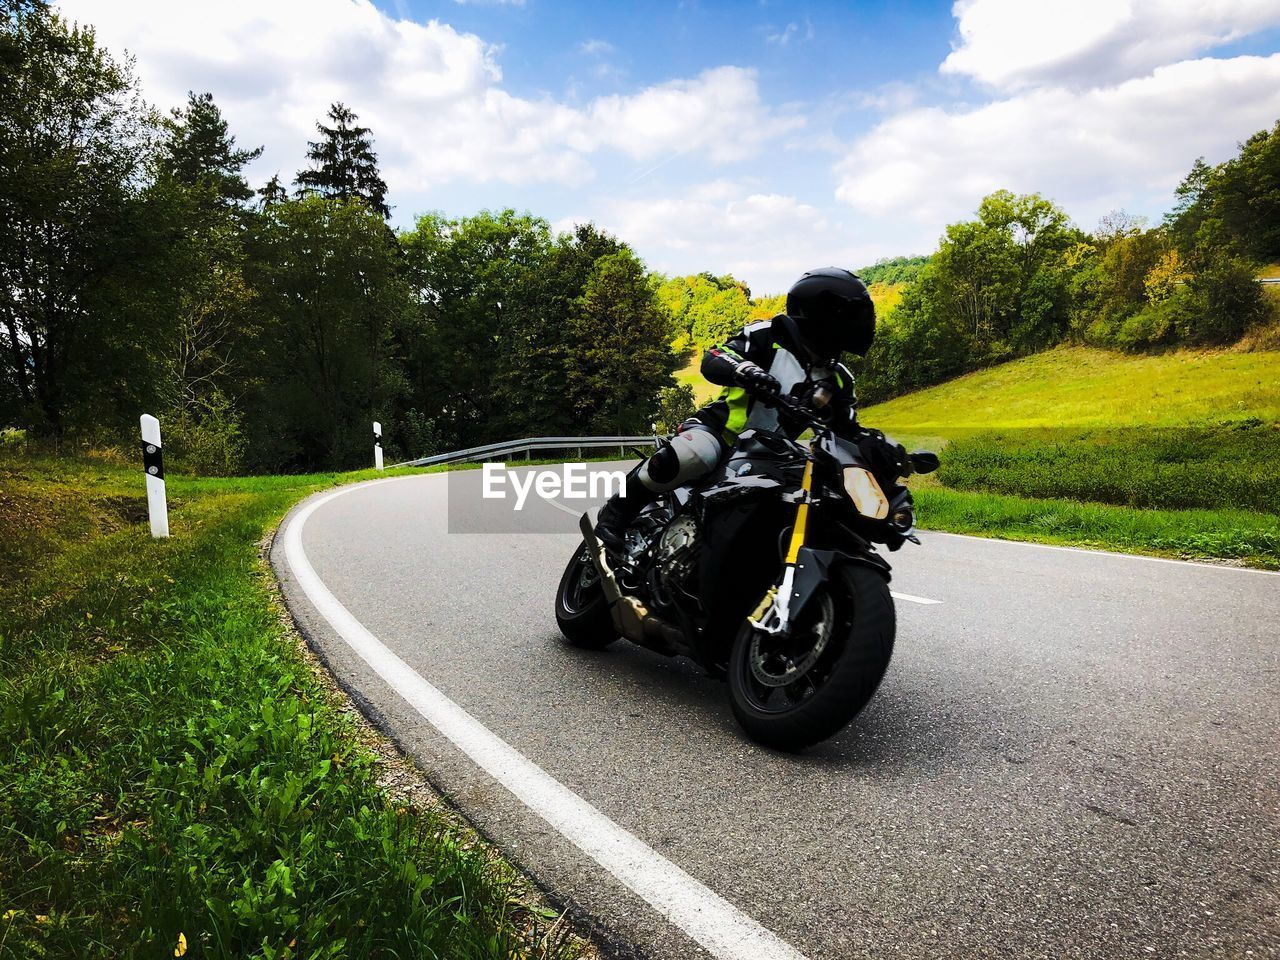 transportation, plant, tree, mode of transportation, motorcycle, sky, road, land vehicle, nature, helmet, cloud - sky, day, grass, real people, leisure activity, one person, full length, riding, outdoors, crash helmet